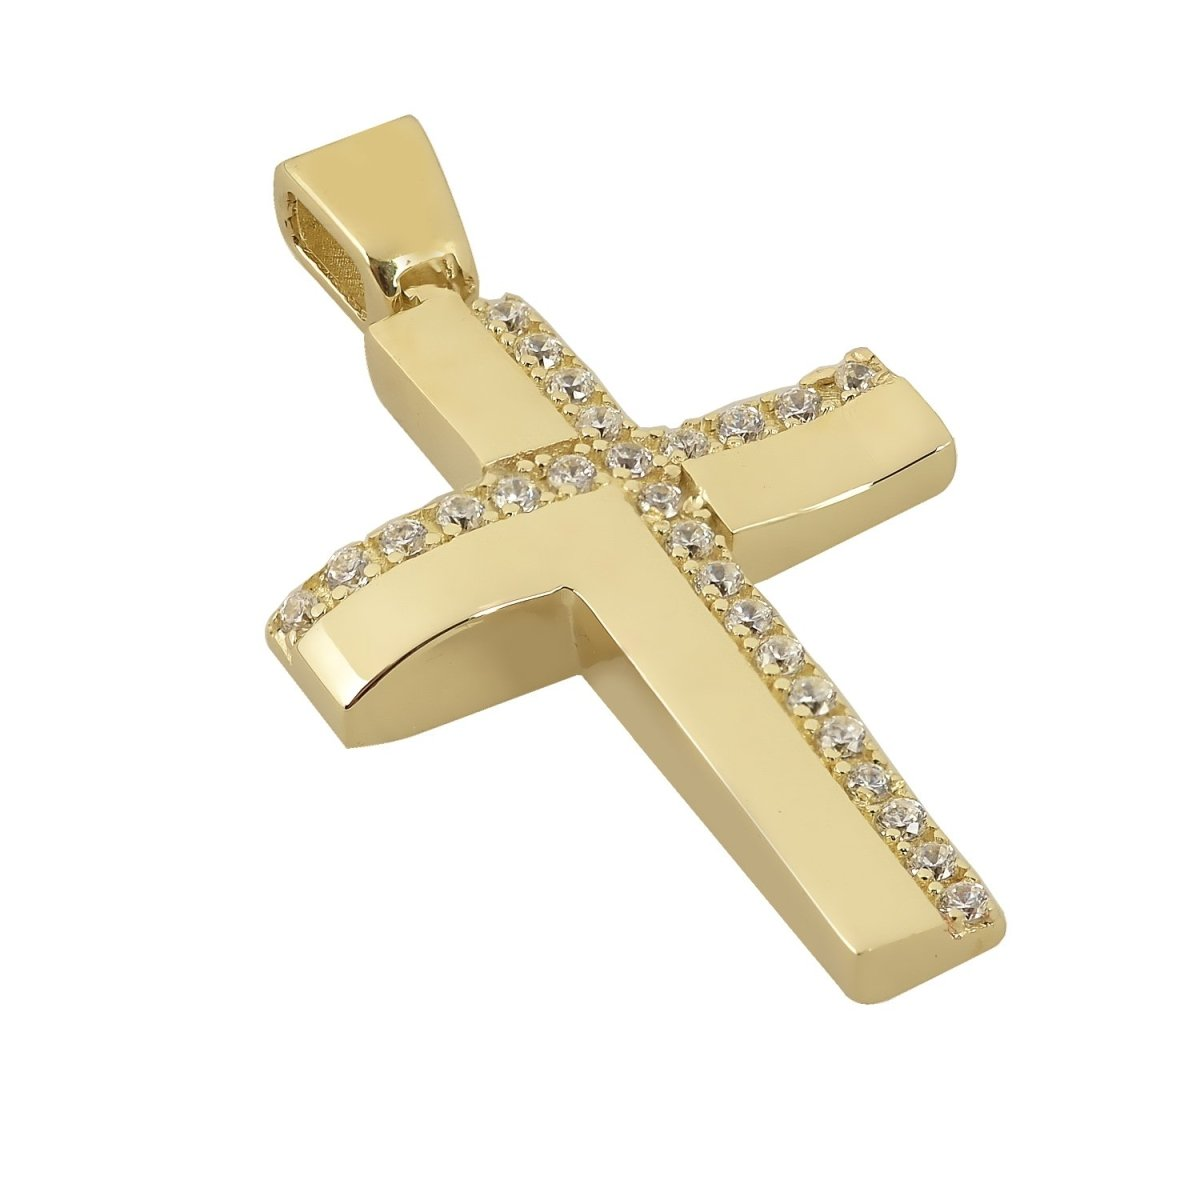 Christening Cross STA4443 Double Sided Gold K14 - Goldy Jewelry Store